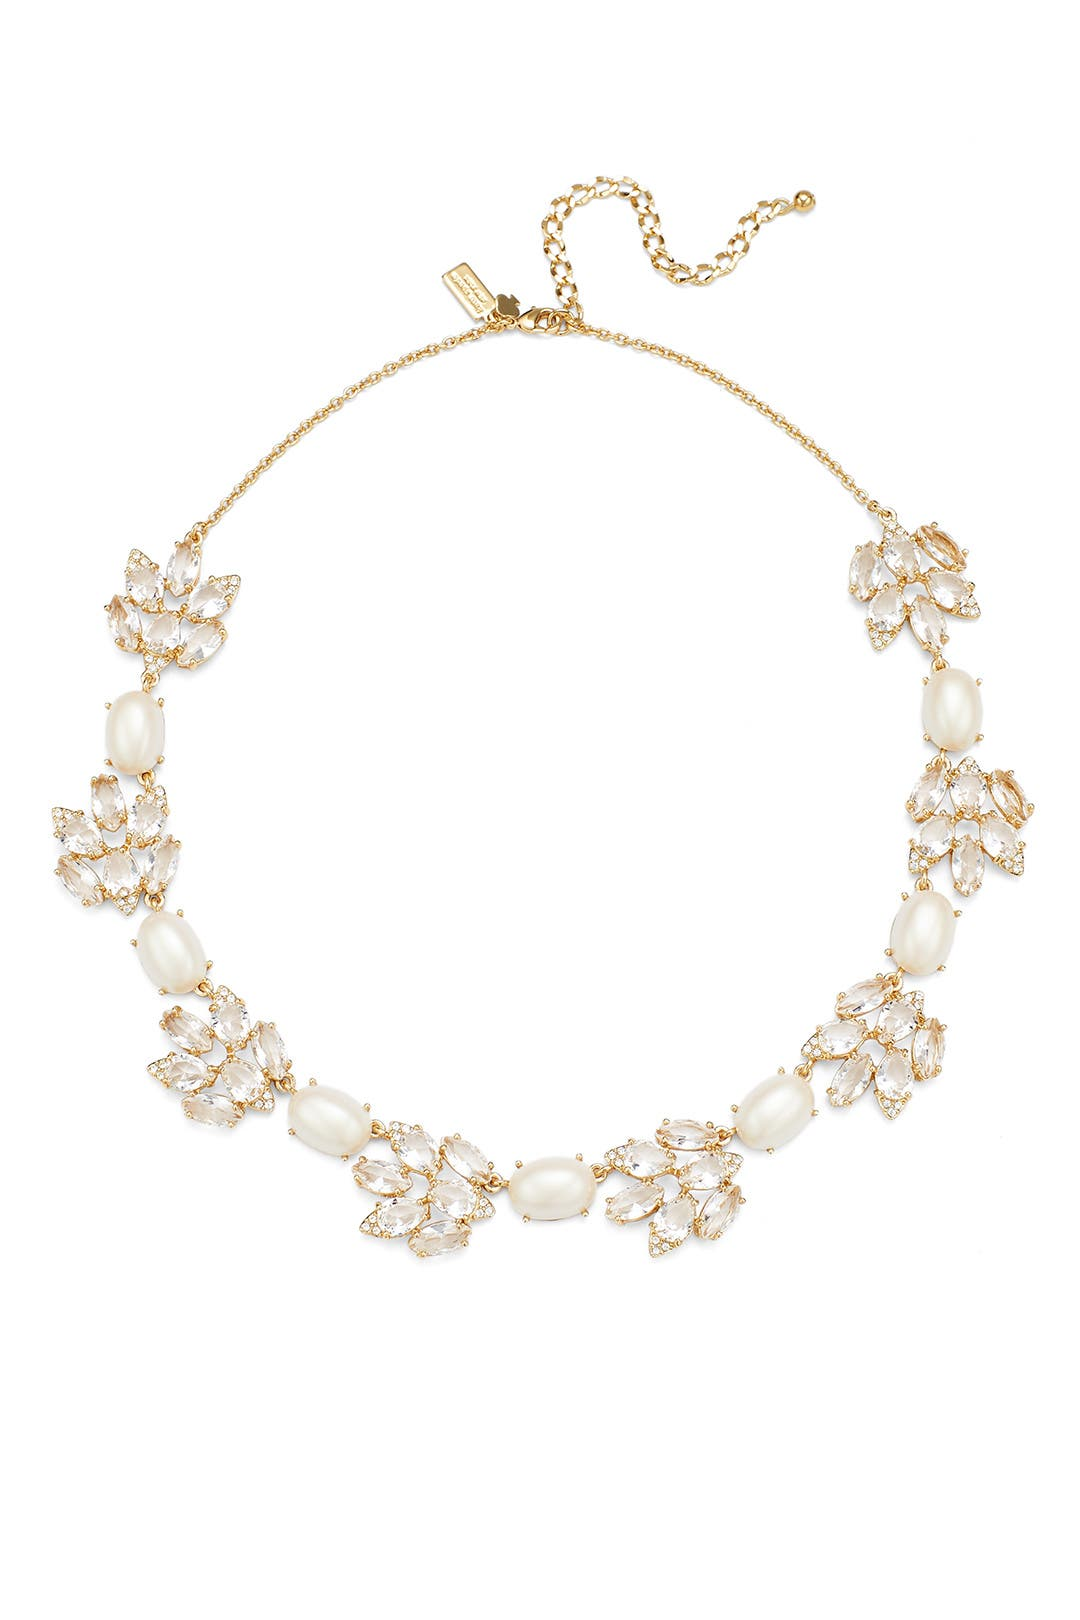 Pearl And Crystal Statement Necklace By Kate Spade New York Accessories For  $30  Rent The Runway